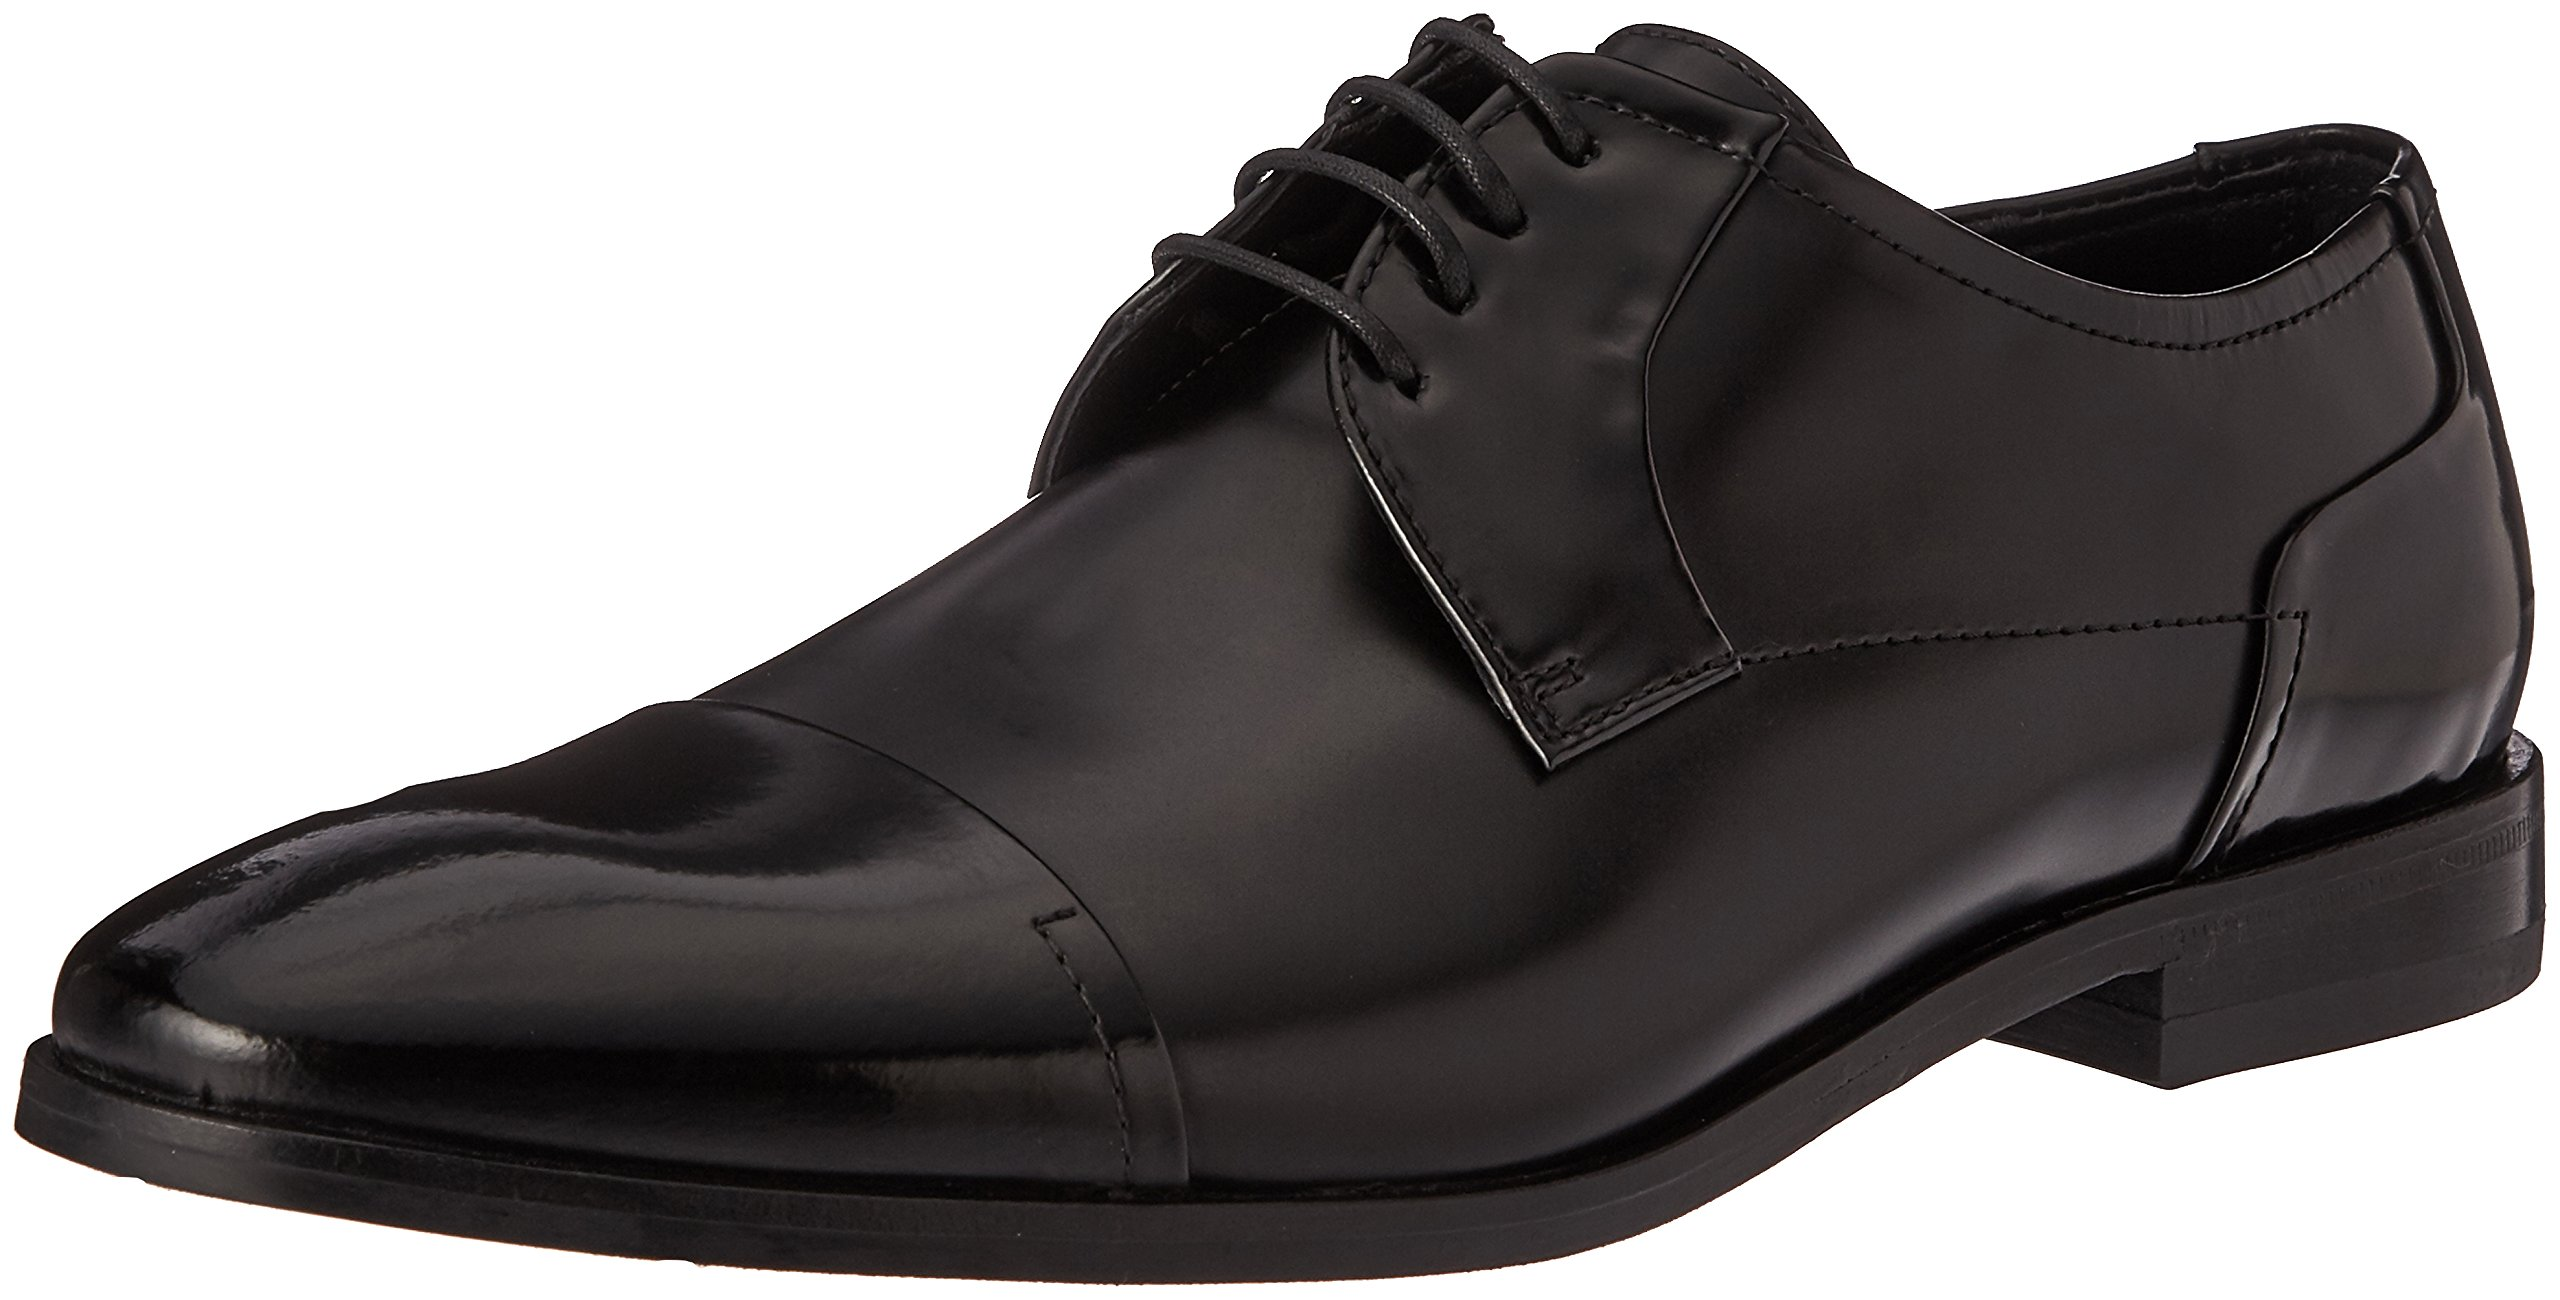 HUGO by Hugo Boss Men's Square Business Matte Leather Lace up Derby Work Shoe, Black, 7 N US